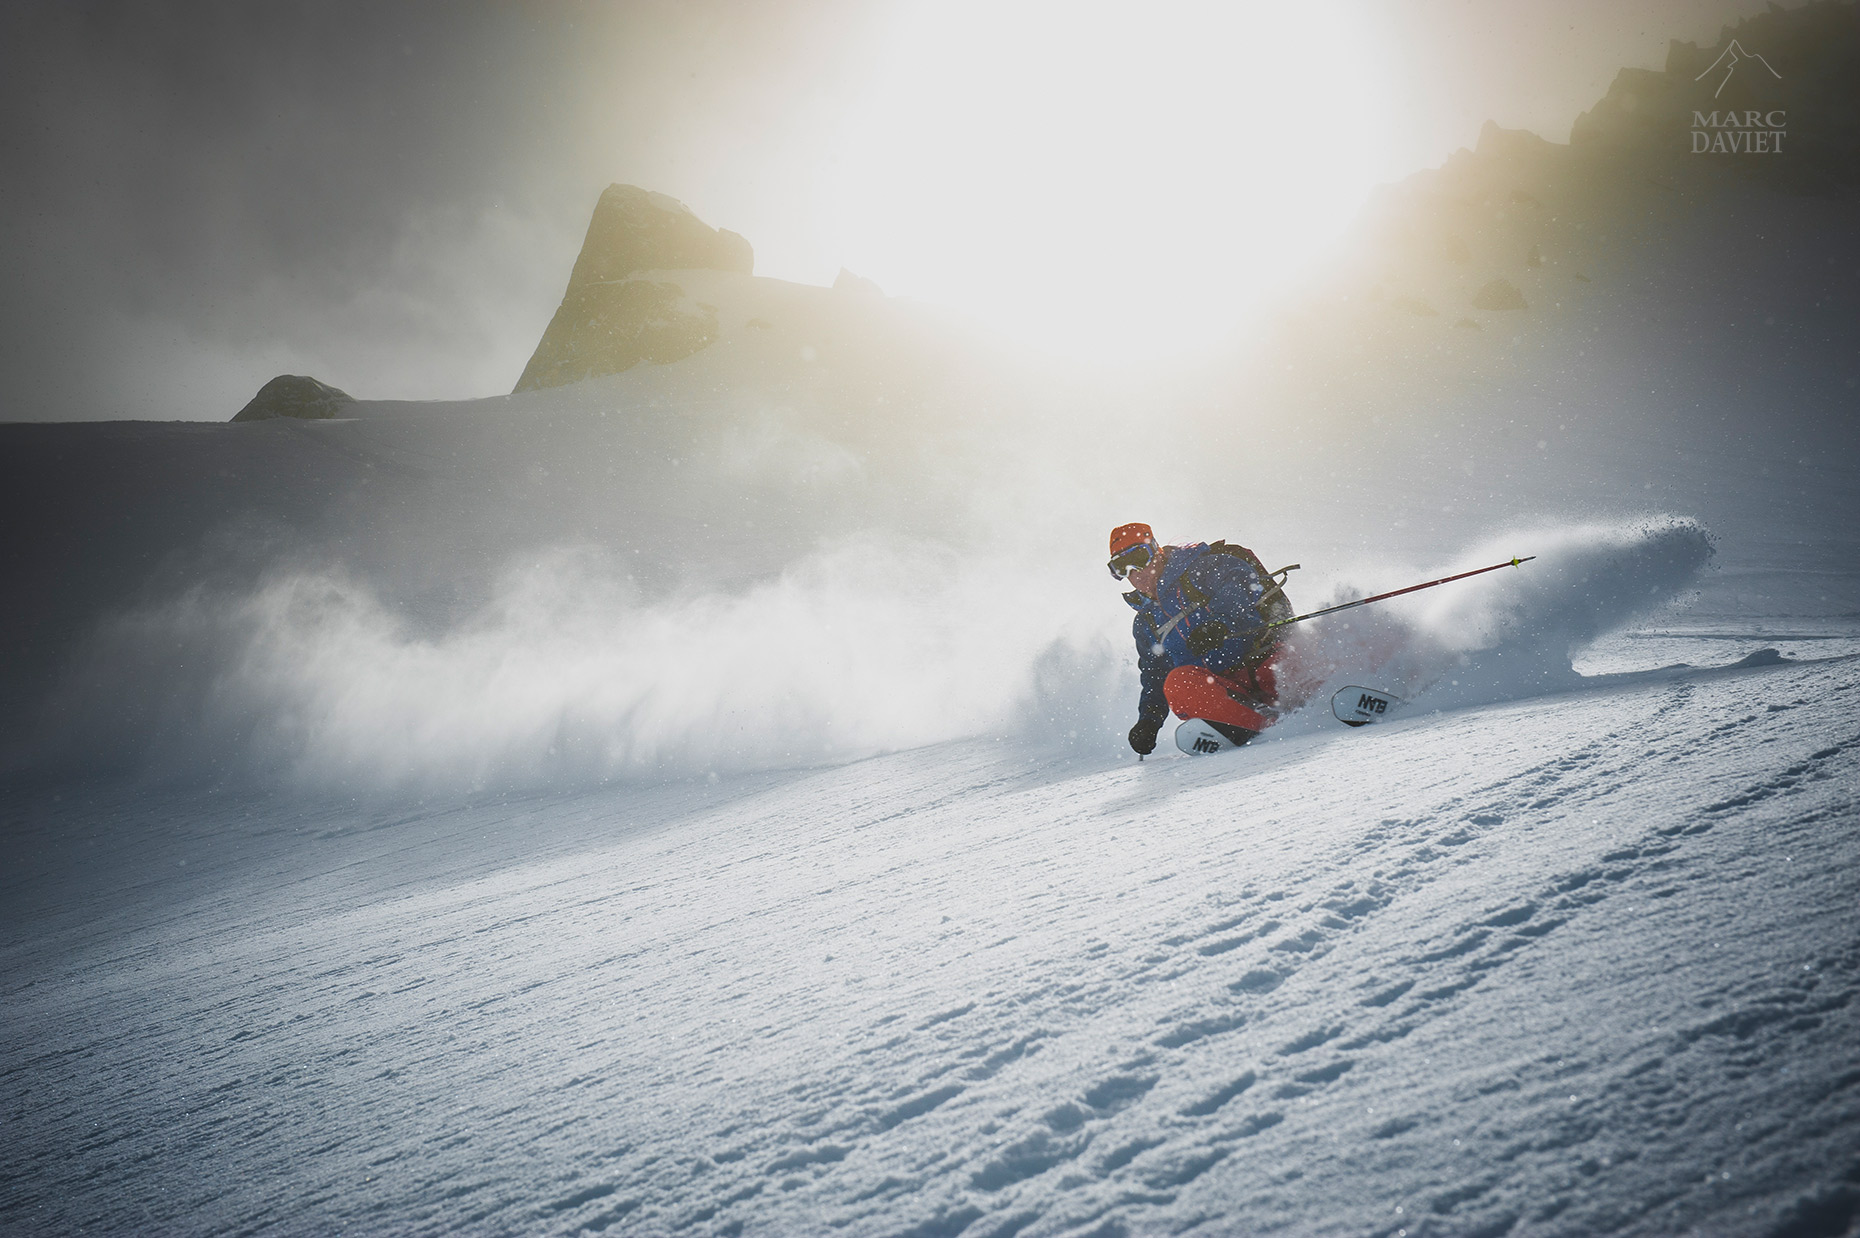 Freeride - Chamonix - Marc Daviet Photography